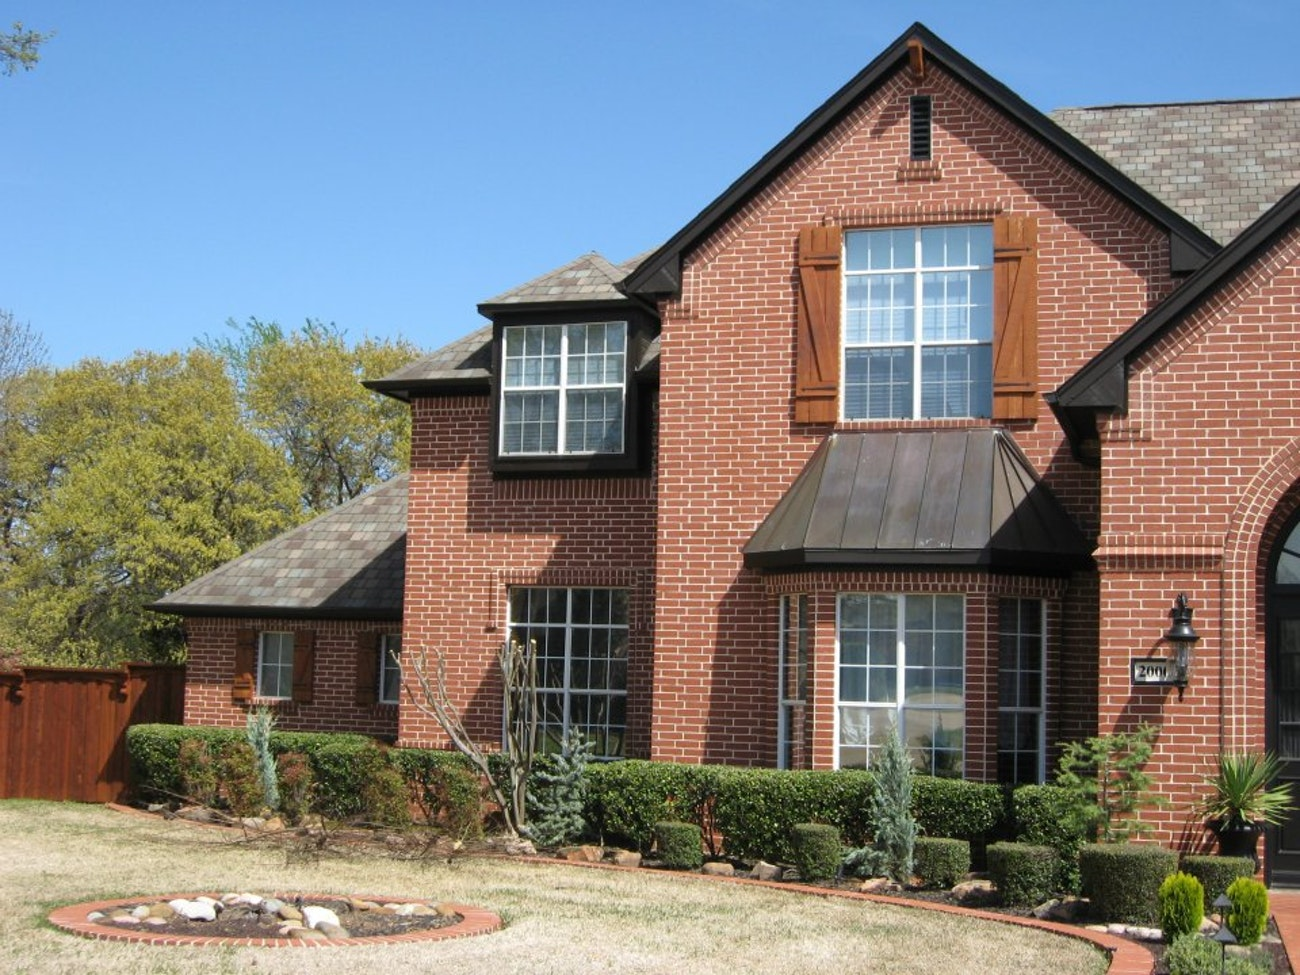 white-builder-grade-windows-with-red-brick